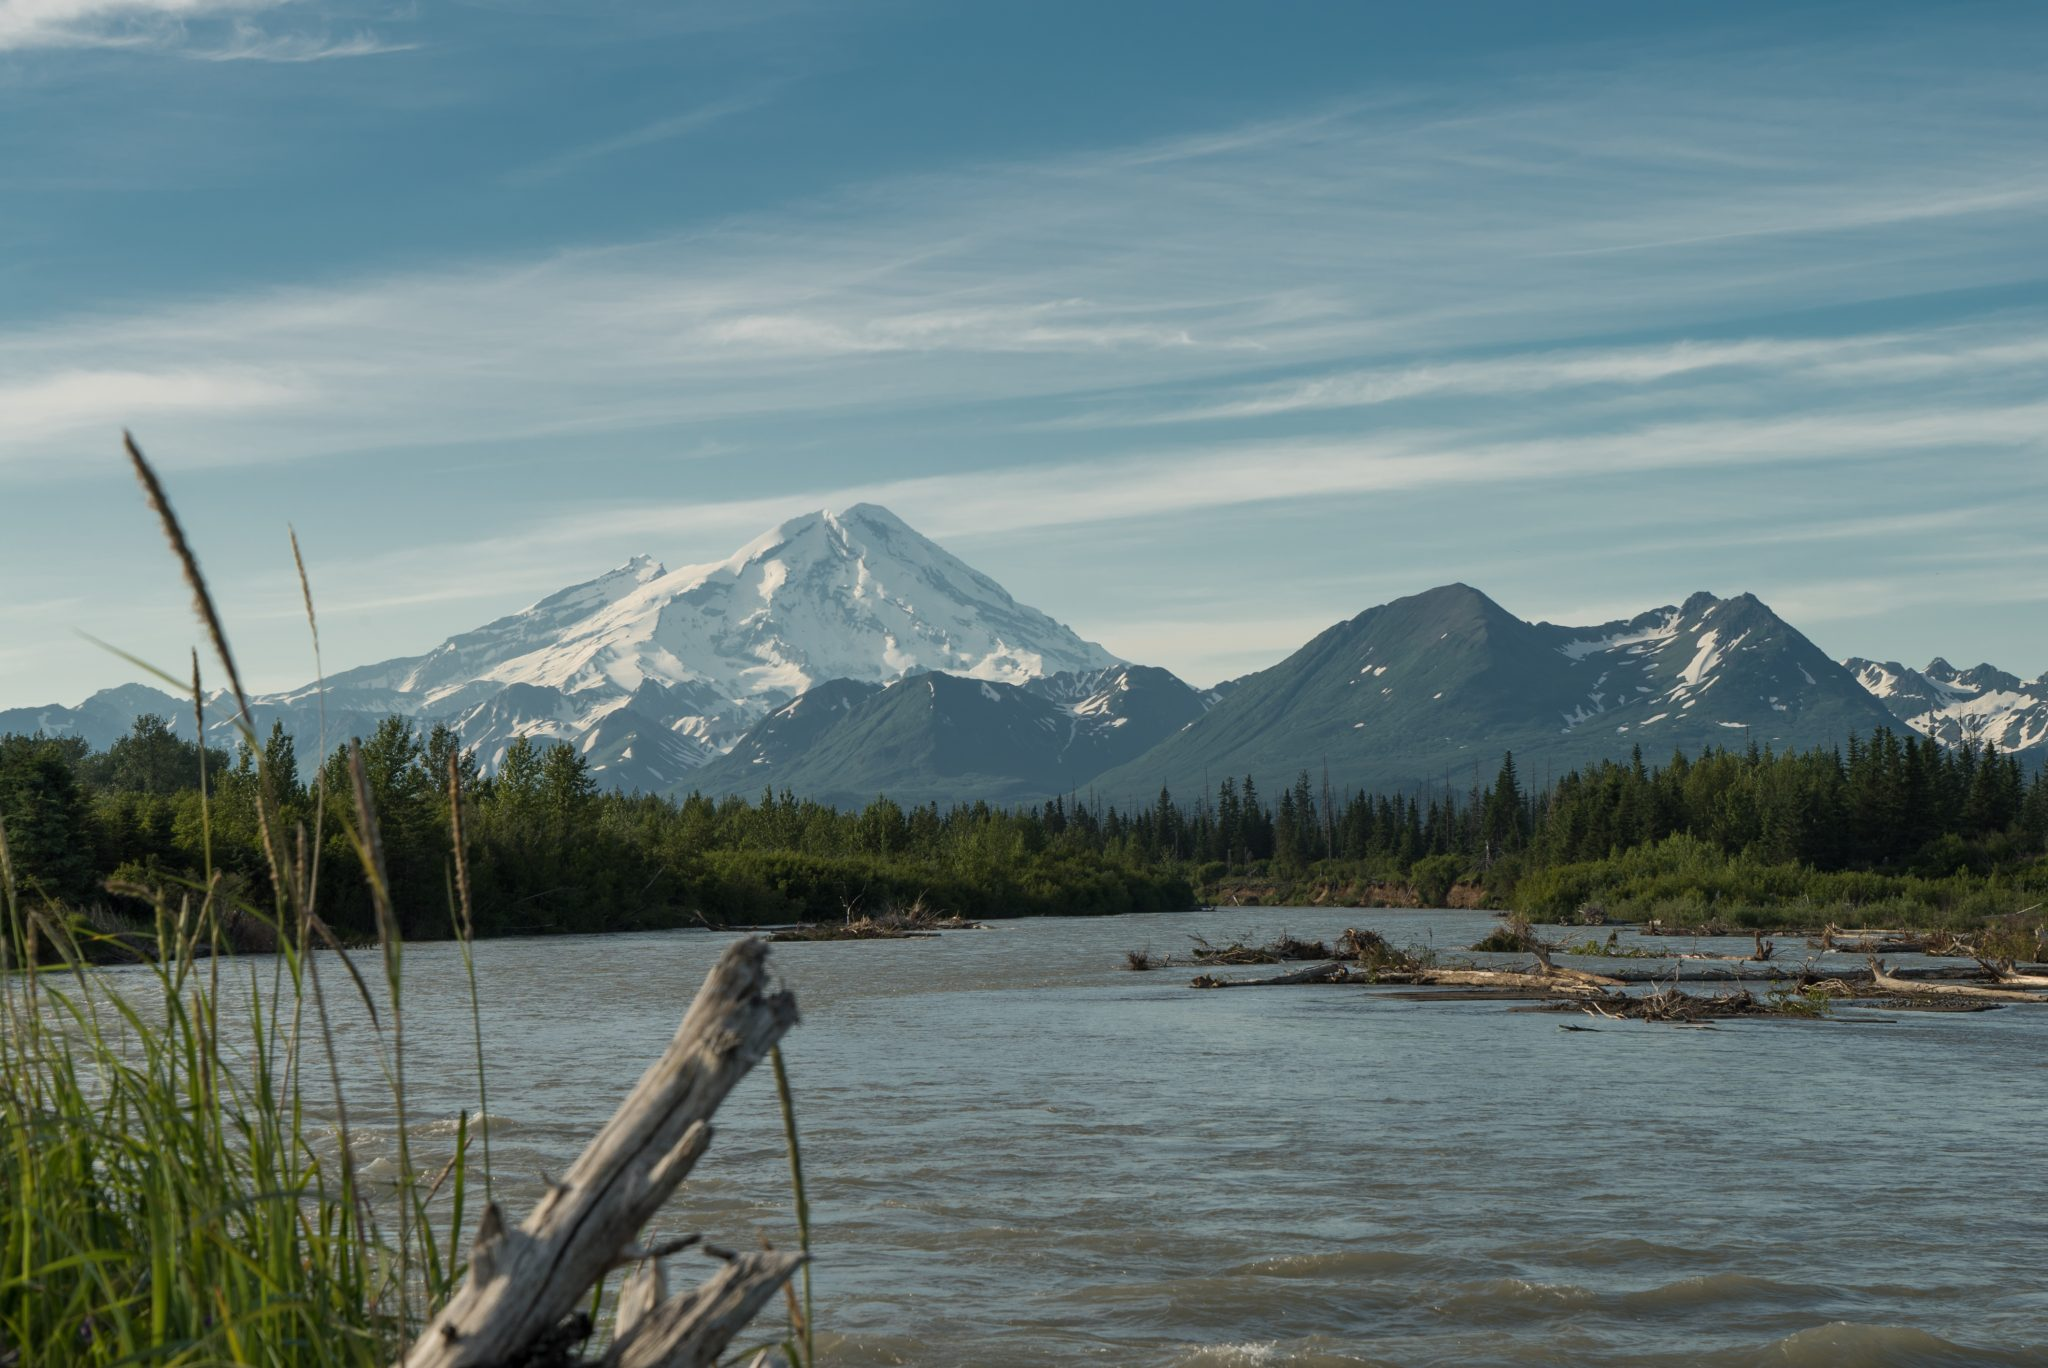 alaska-crescent-river-redoubt-mountain-vacation-fishing-salmon-snug-harbor-DSC06863